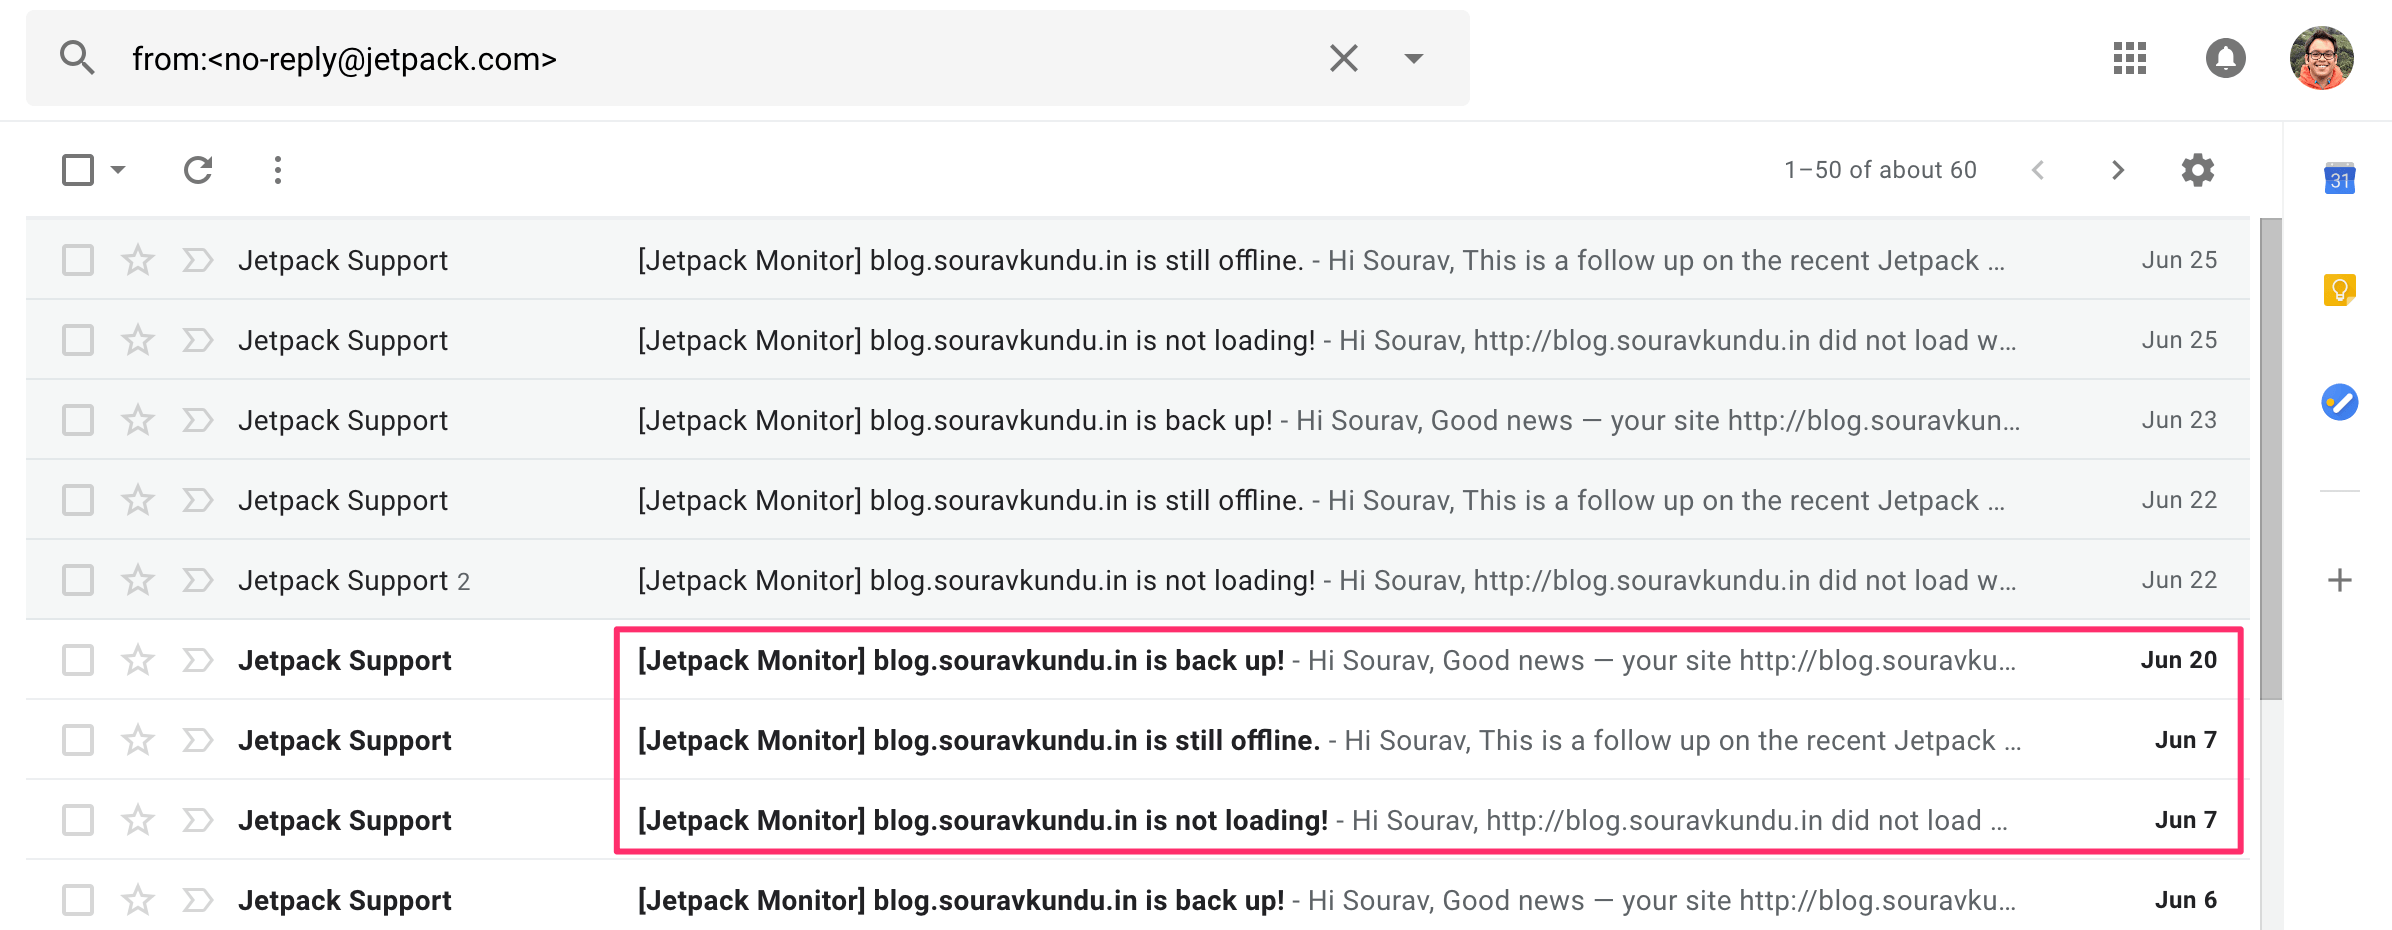 Email Notifications Sent by Jetpack's Site Monitoring Service